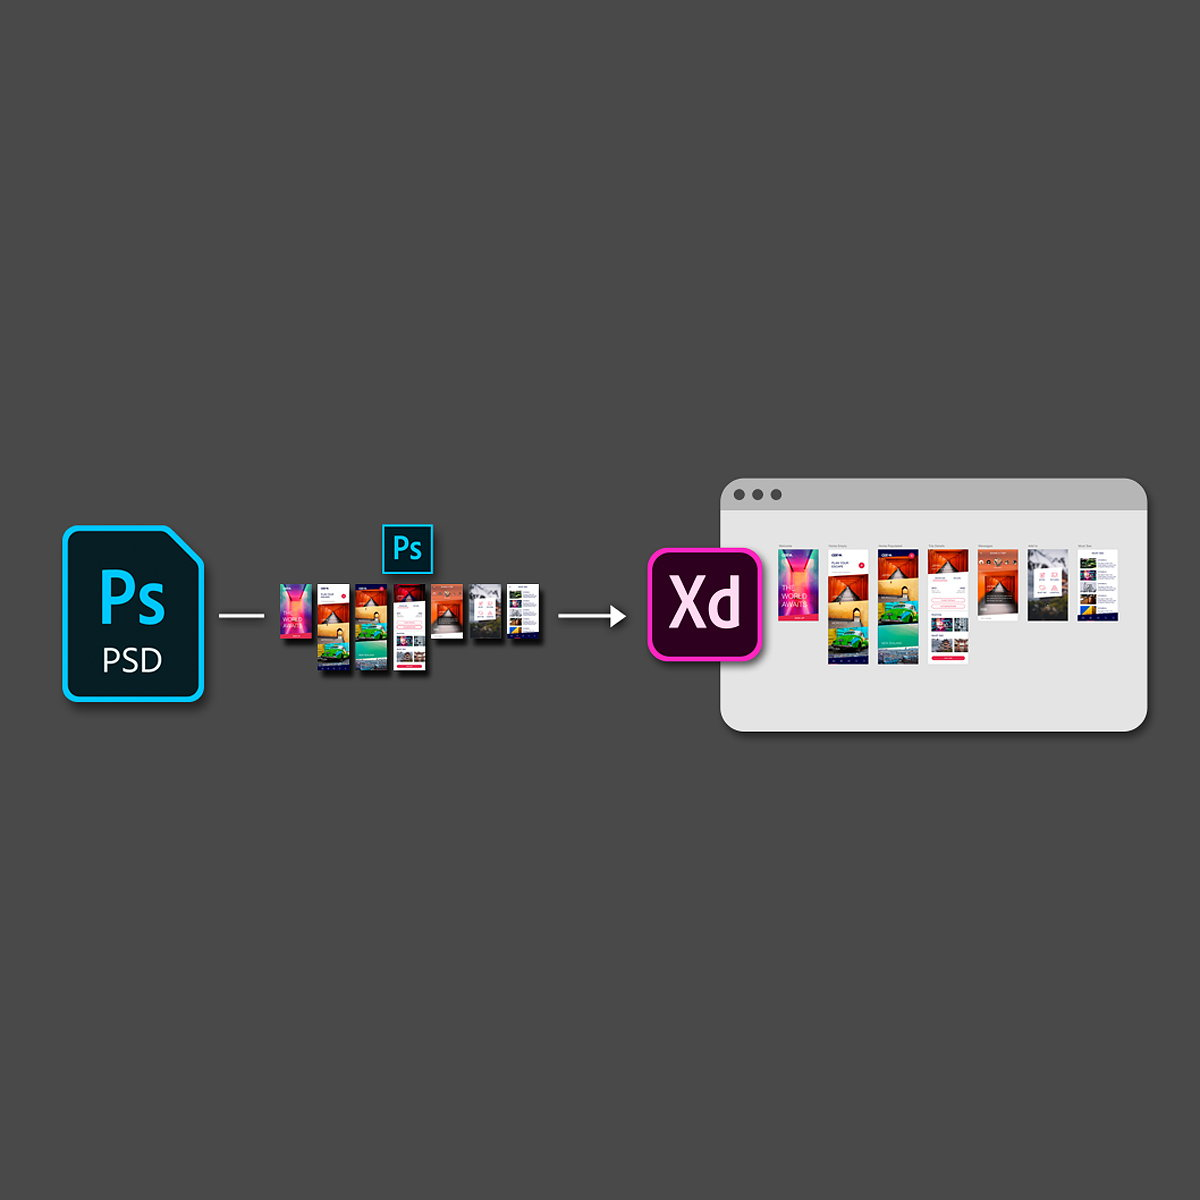 Adobe XD Announces Integrations with Photoshop CC and Sketch